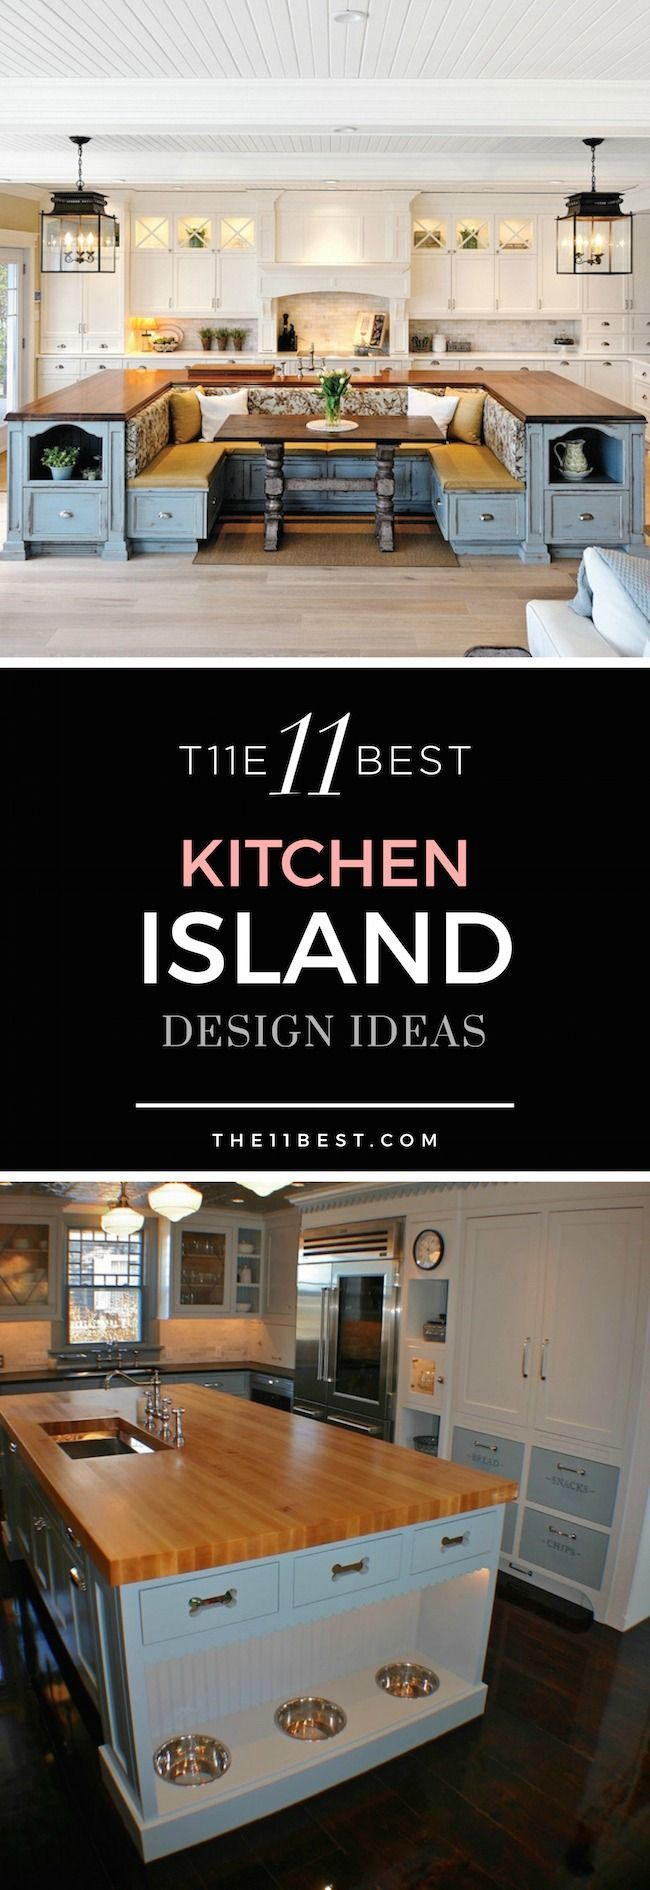 Best 10+ Large kitchen design ideas on Pinterest | Dream kitchens ...